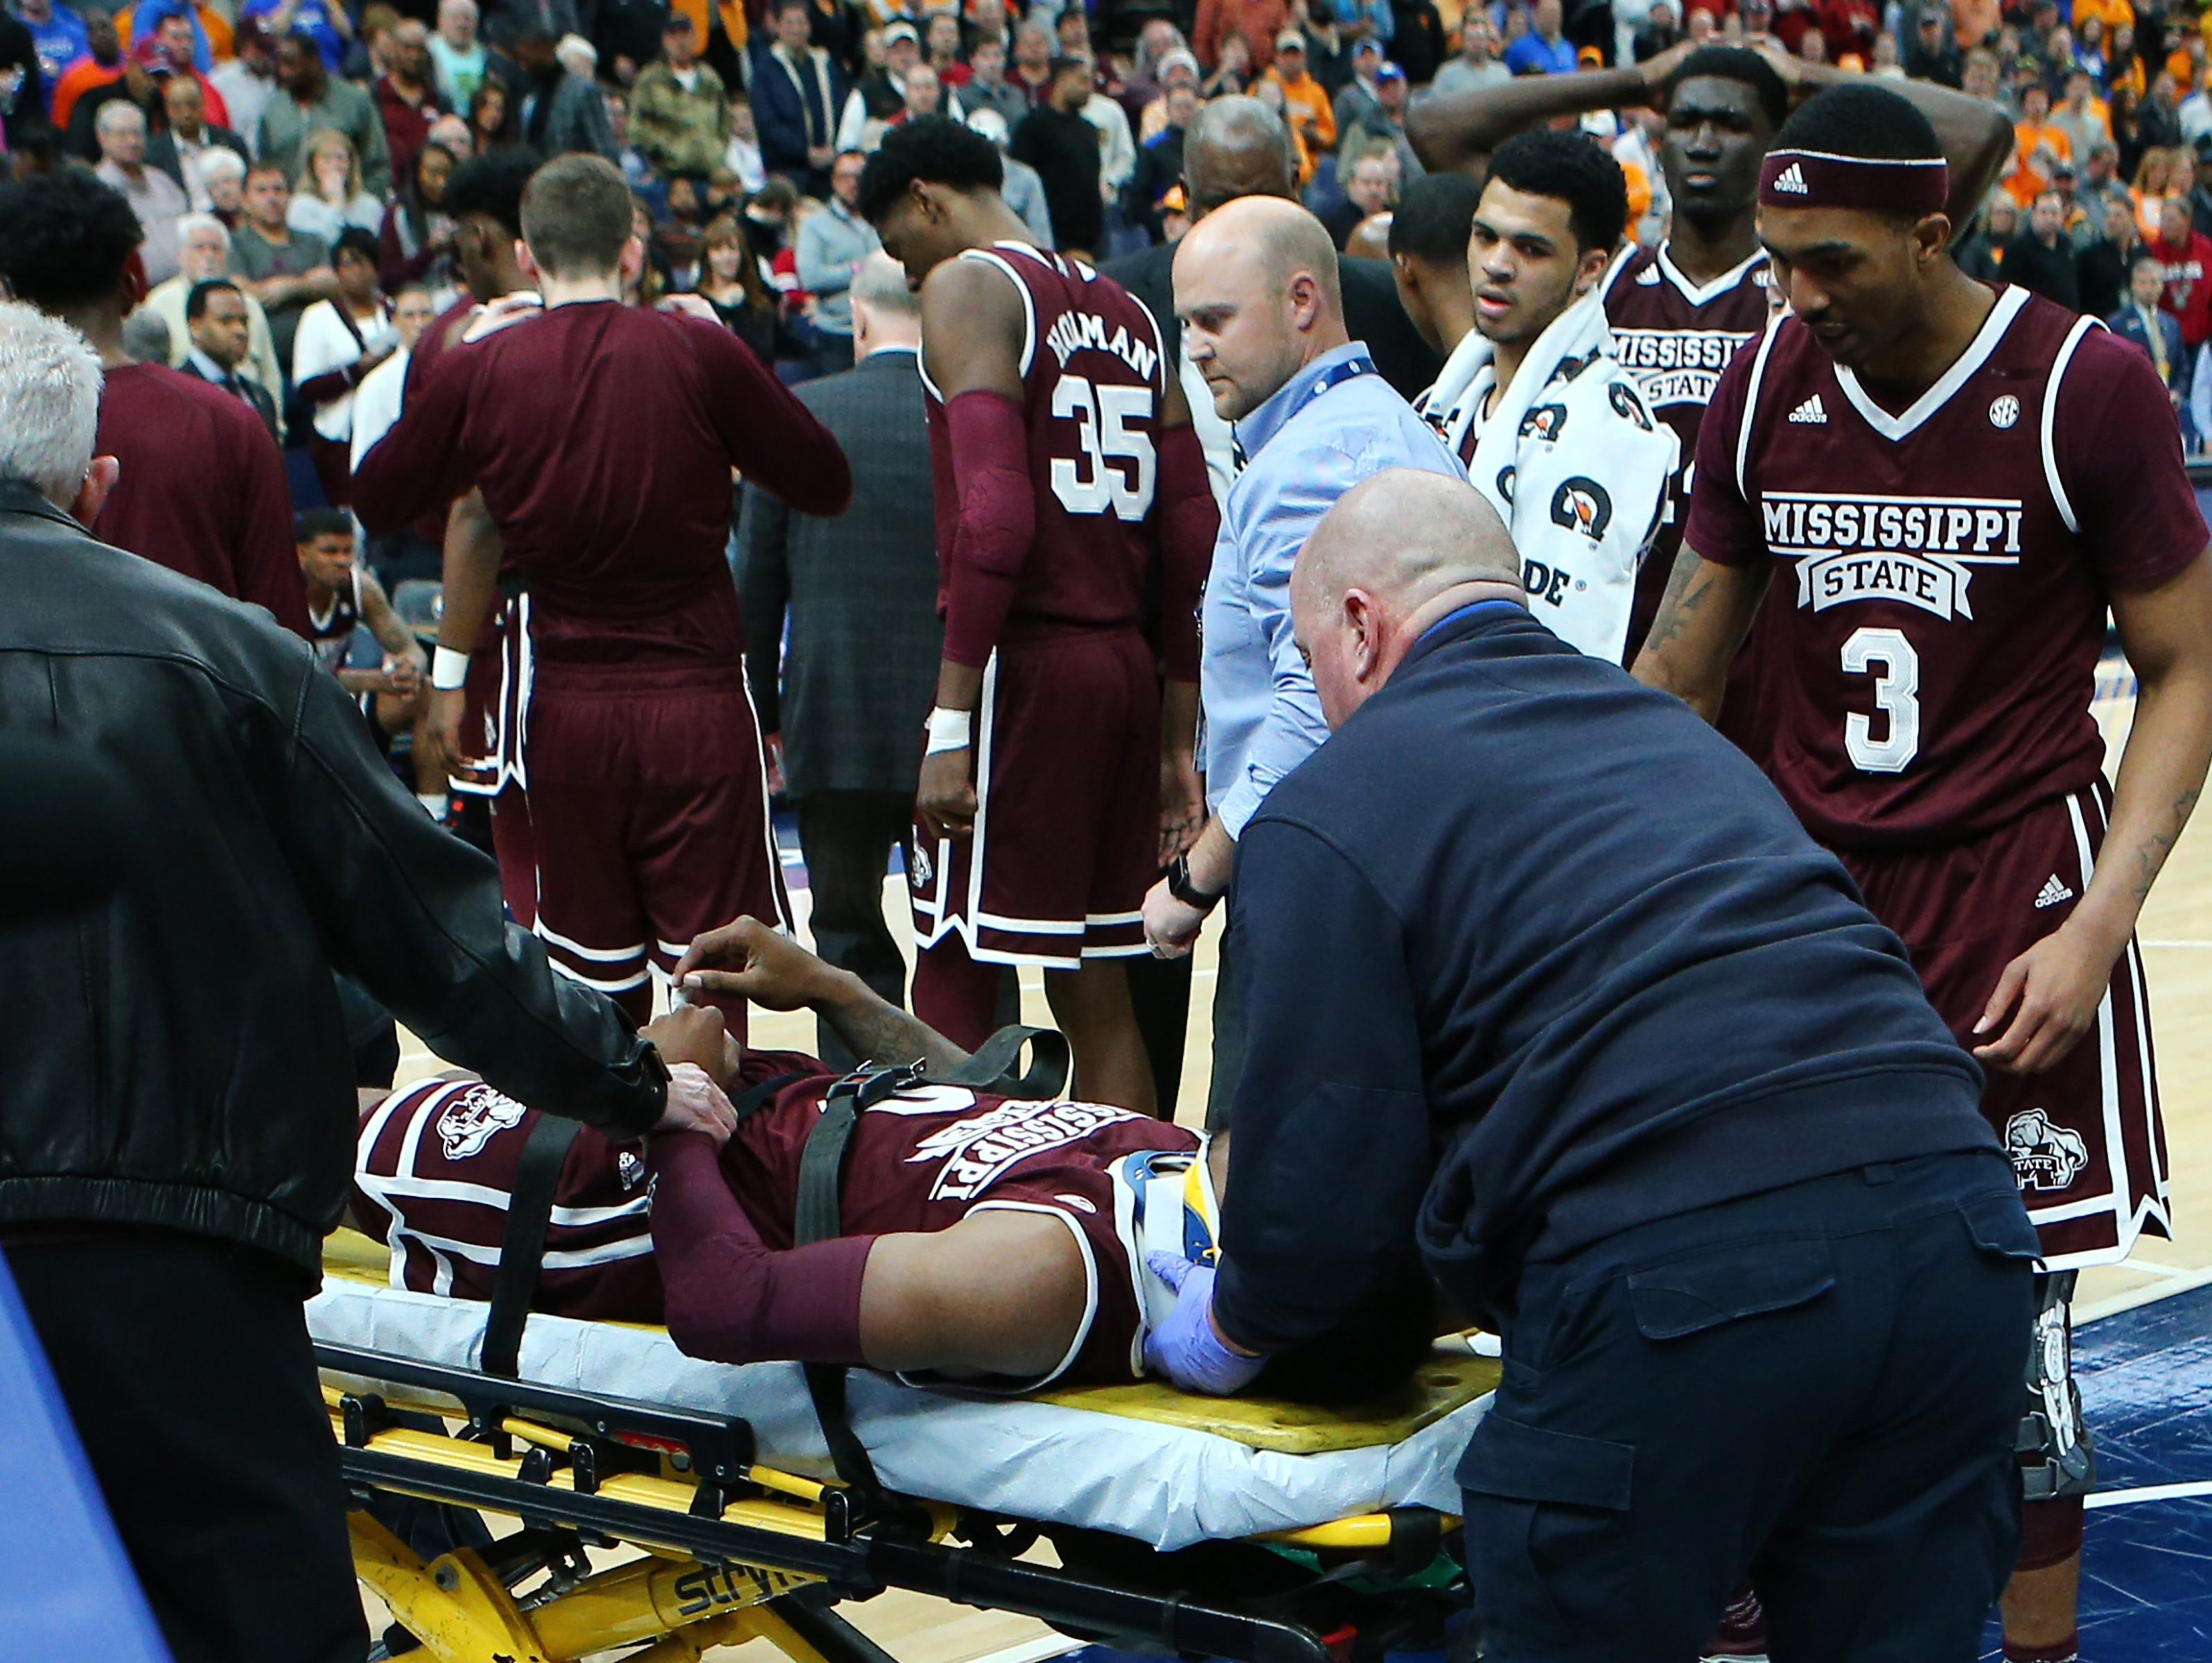 Mar 9, 2018; St. Louis, MO, USA; Mississippi State Bulldogs guard Nick Weatherspoon (not pictured) is take off the court on a stretcher after suffering an apparent injury during the second half against the Tennessee Volunteers in the quarterfinals of the SEC Conference Tournament at Scottrade Center. Mandatory Credit: Billy Hurst-USA TODAY Sports